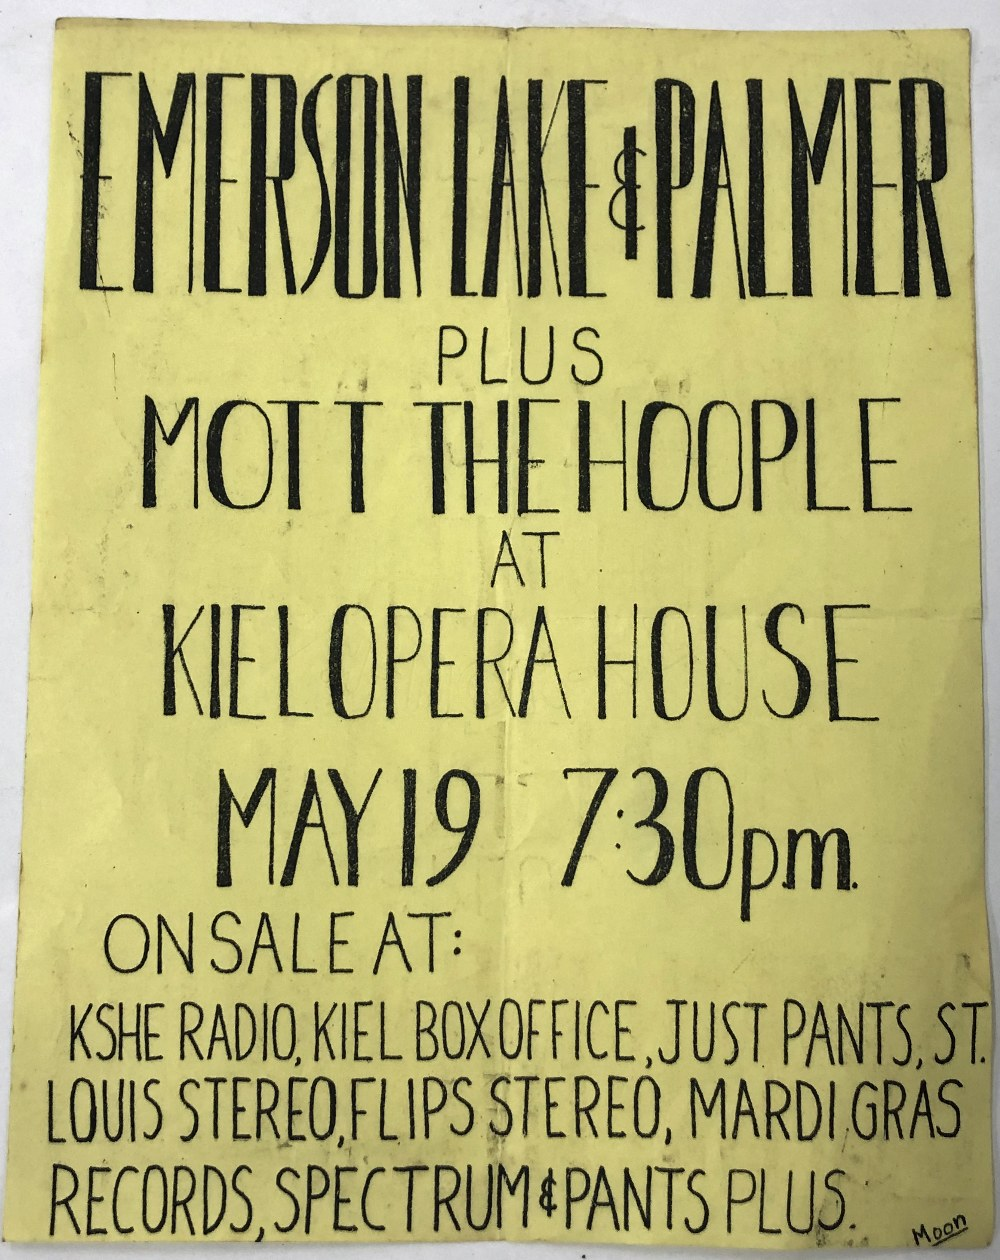 Emerson Lake & Palmer and Mott the Hoople - original hand made concert flyer / poster for Emerson